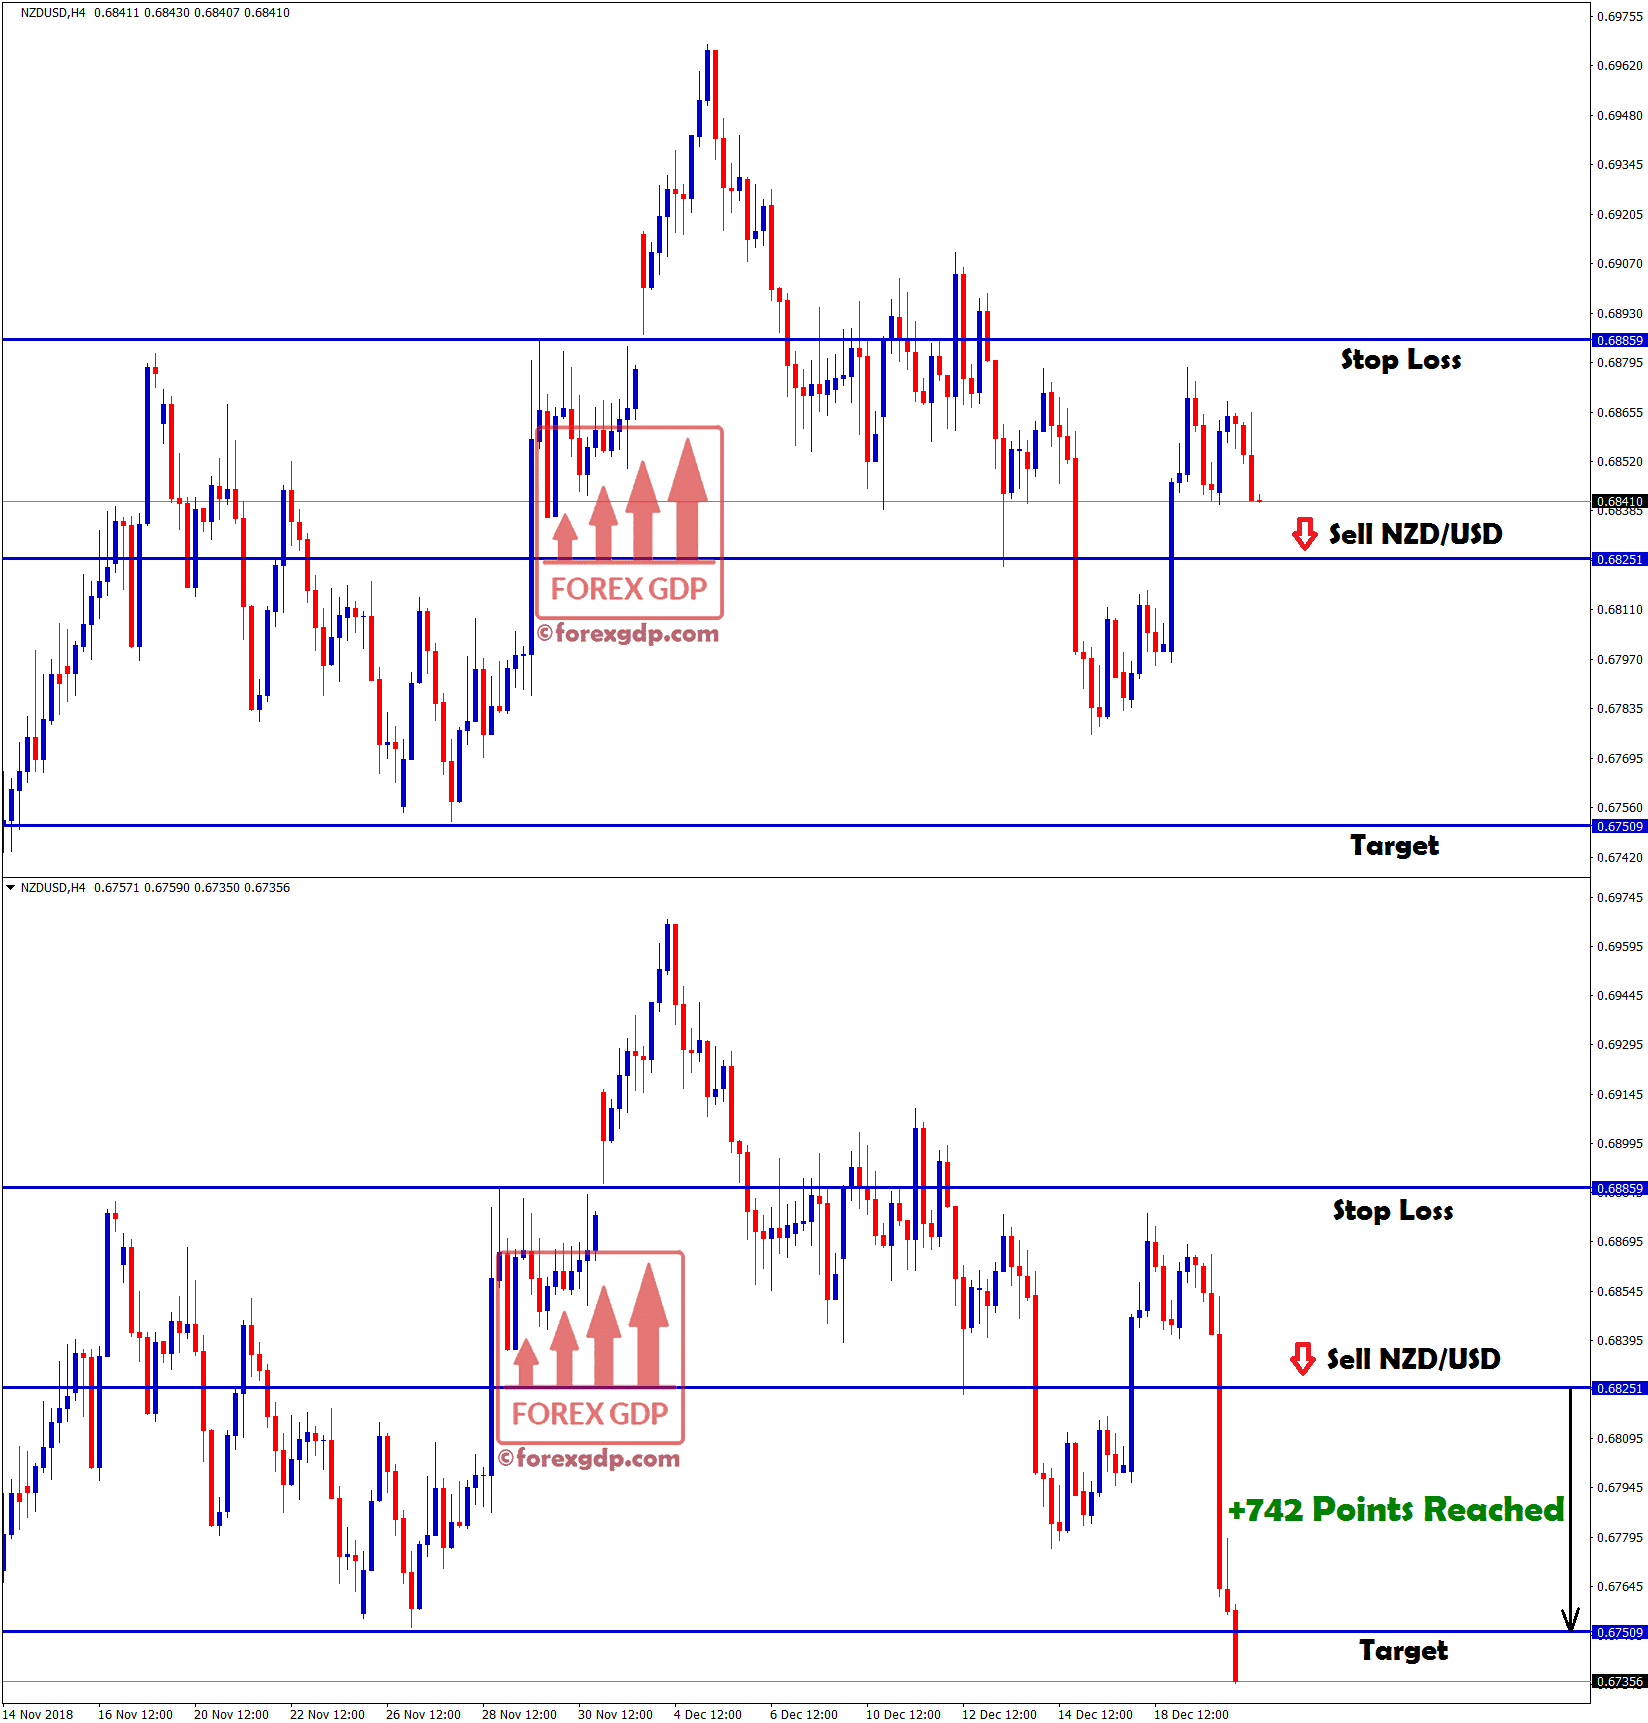 nzd usd reached target with 742 points profit